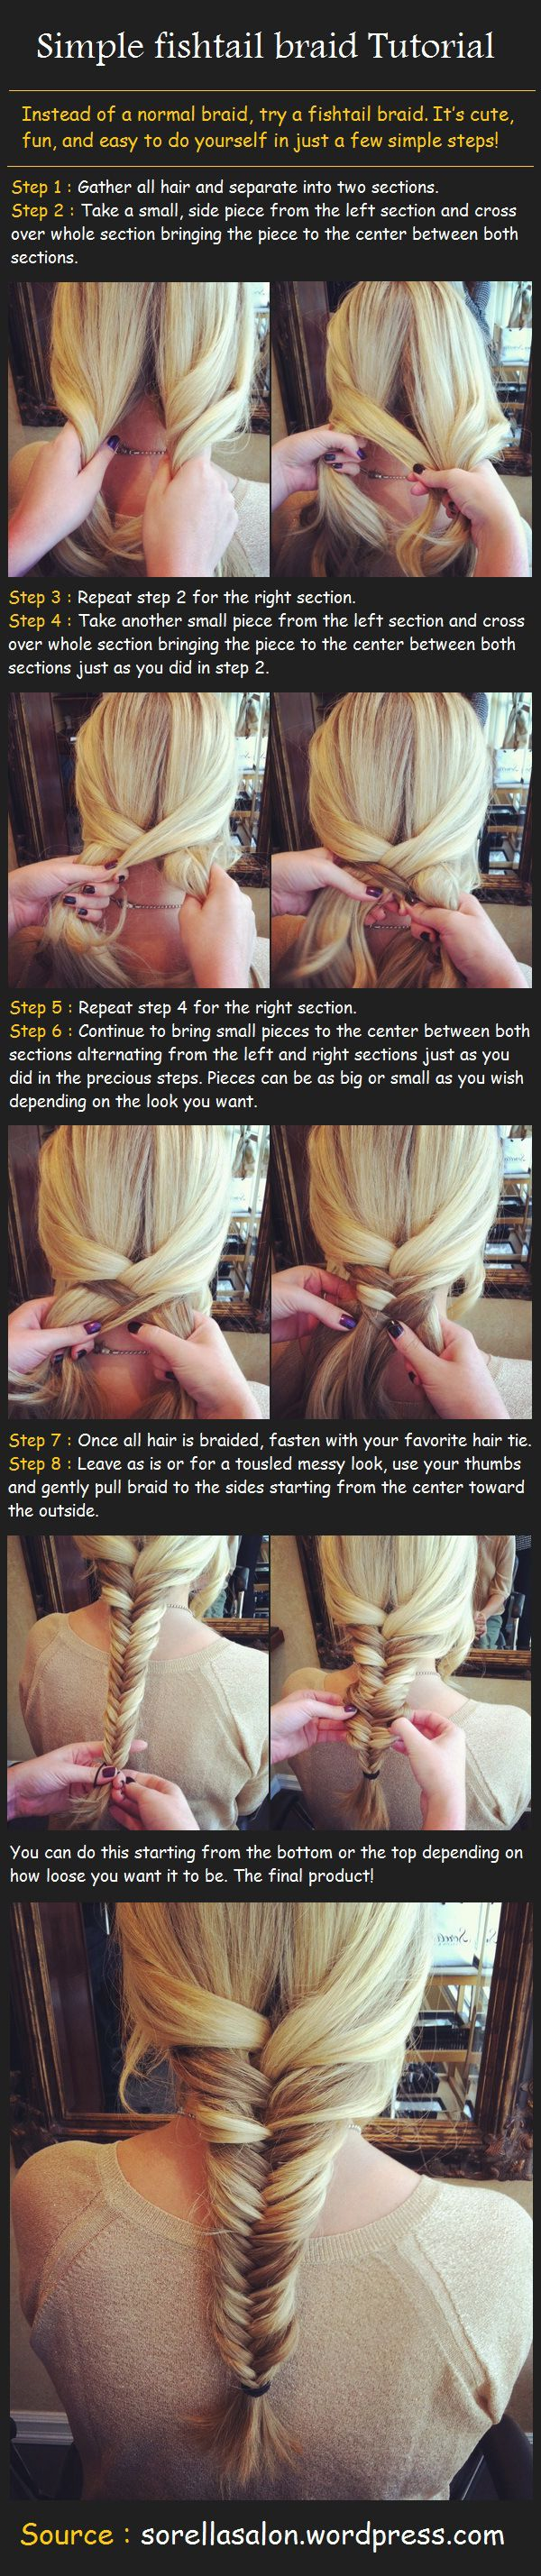 Simple Fishtail Braid Tutorial-Need to start getting more creative with my hair now that it is getting so long